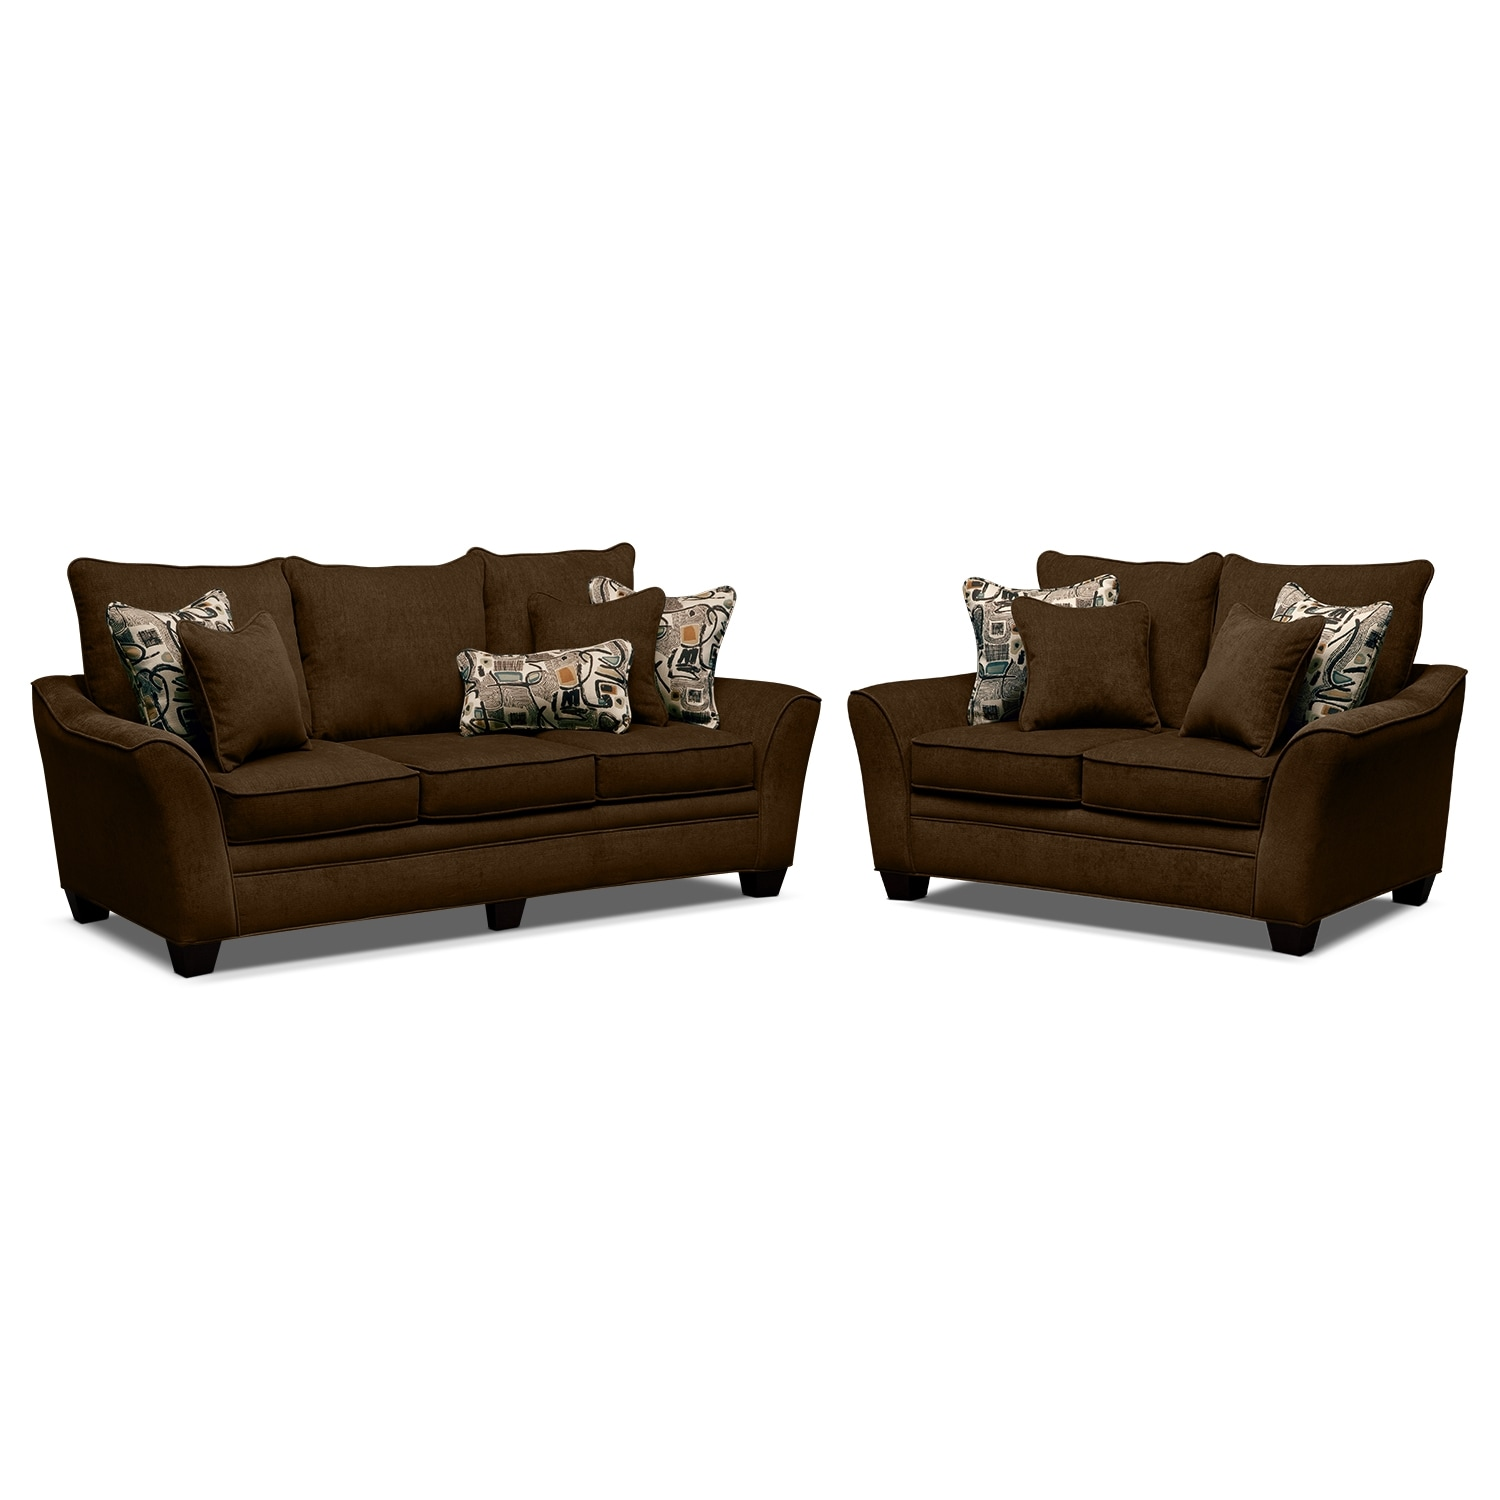 Living Room Furniture - Mandalay 2 Pc. Living Room